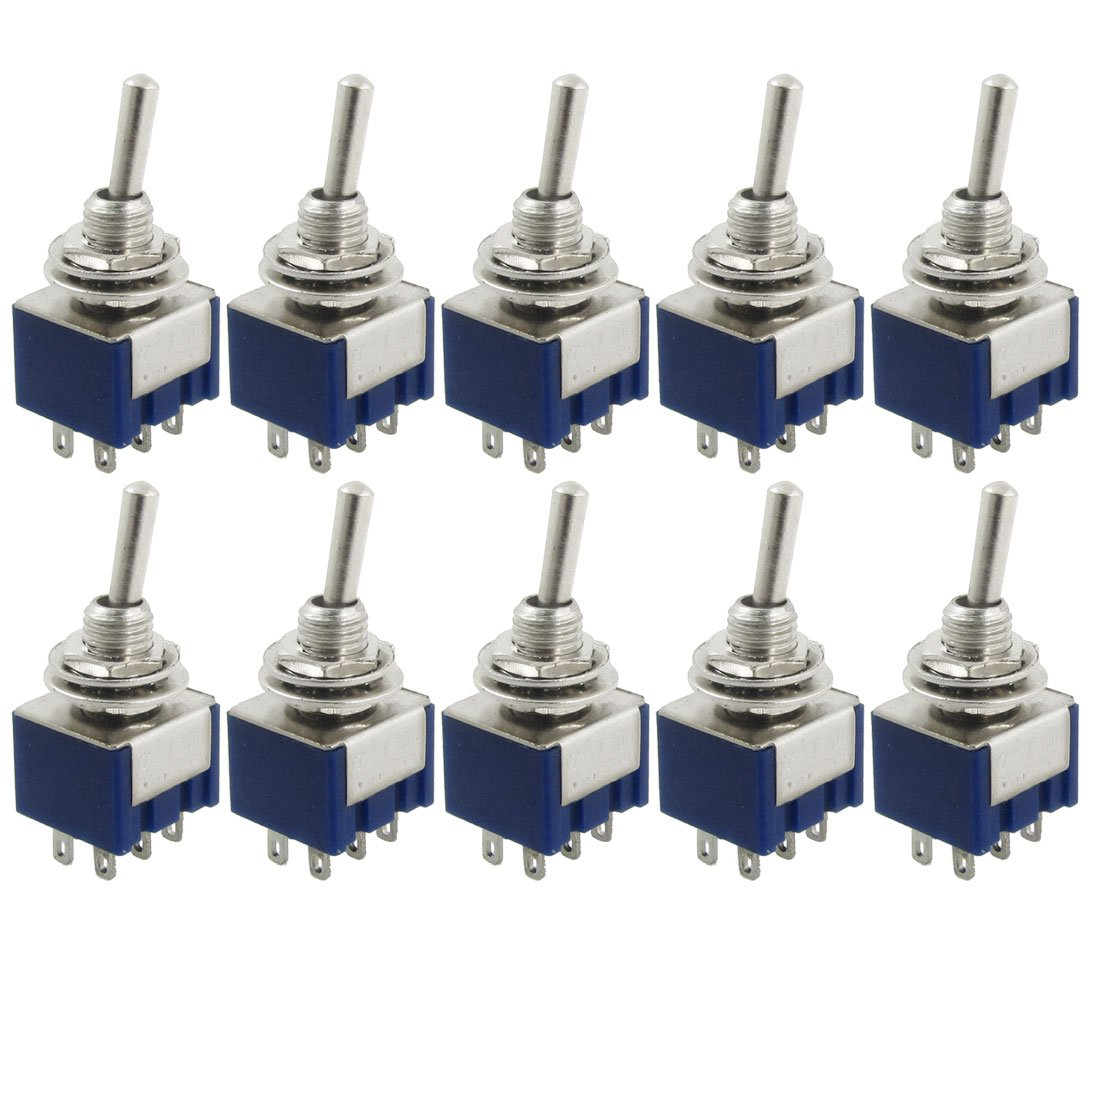 10 Pcs AC 125V 6A Amps ON/ON 2 Position DPDT Toggle Switch promotion 10pcs ac 6a 250v 10a 125v 6 pin dpdt on on 2 position snap in boat rocker switch